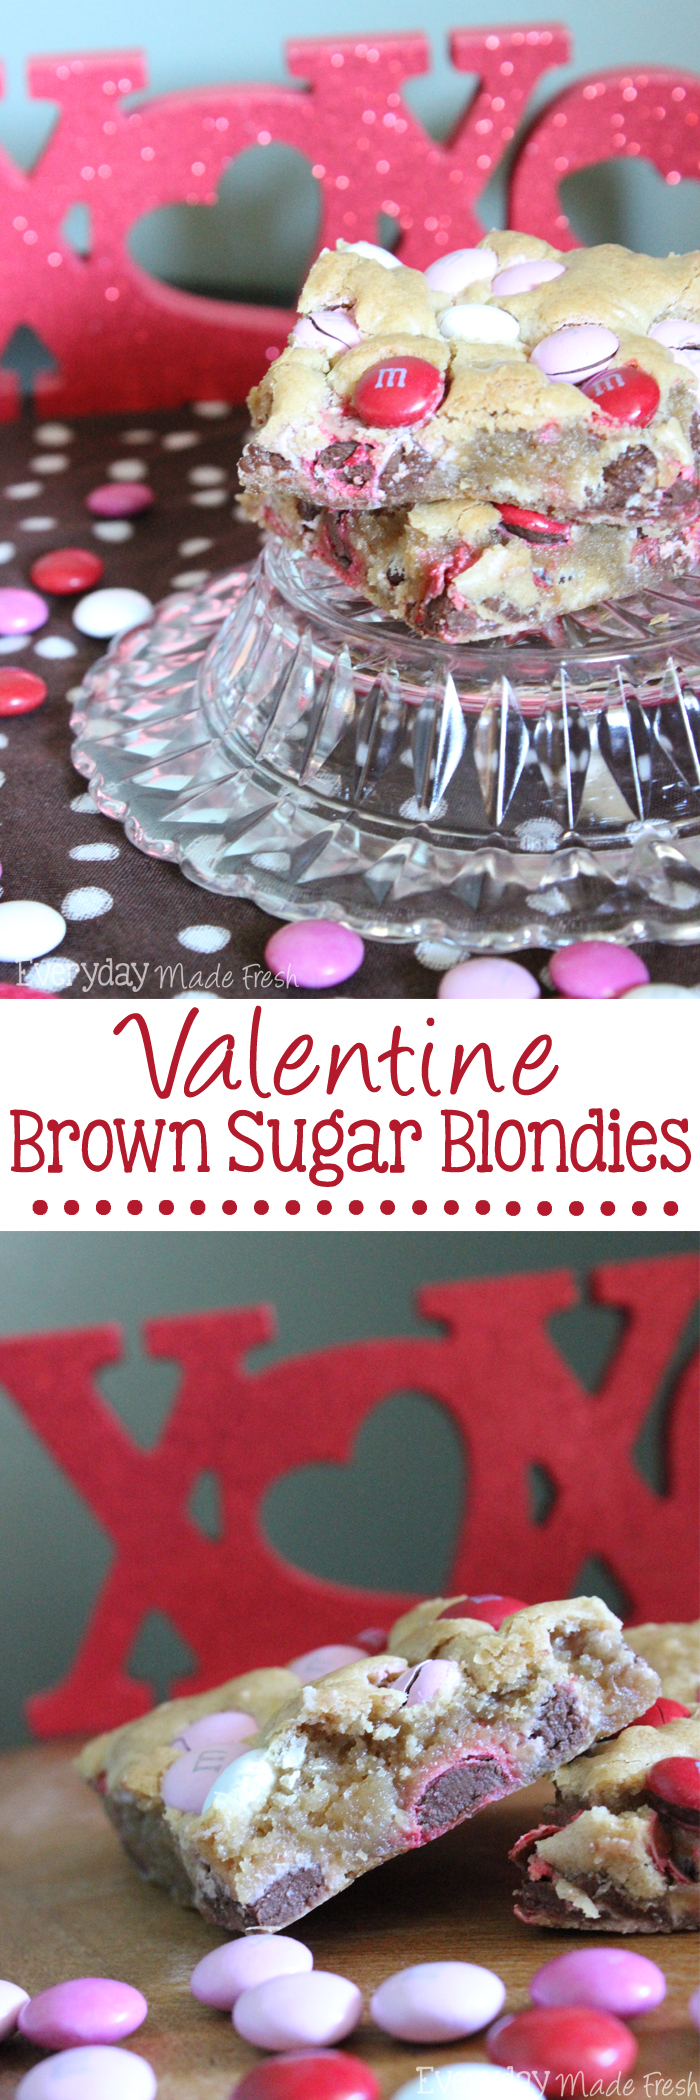 Brown Sugar Blondies are the perfect treat to serve up on Valentine's Day or any day! Soft warm hints of brown sugar and vanilla, with a pop of color from the M&M's.   OHMY-CREATIVE.COM via EverydayMadeFresh.com